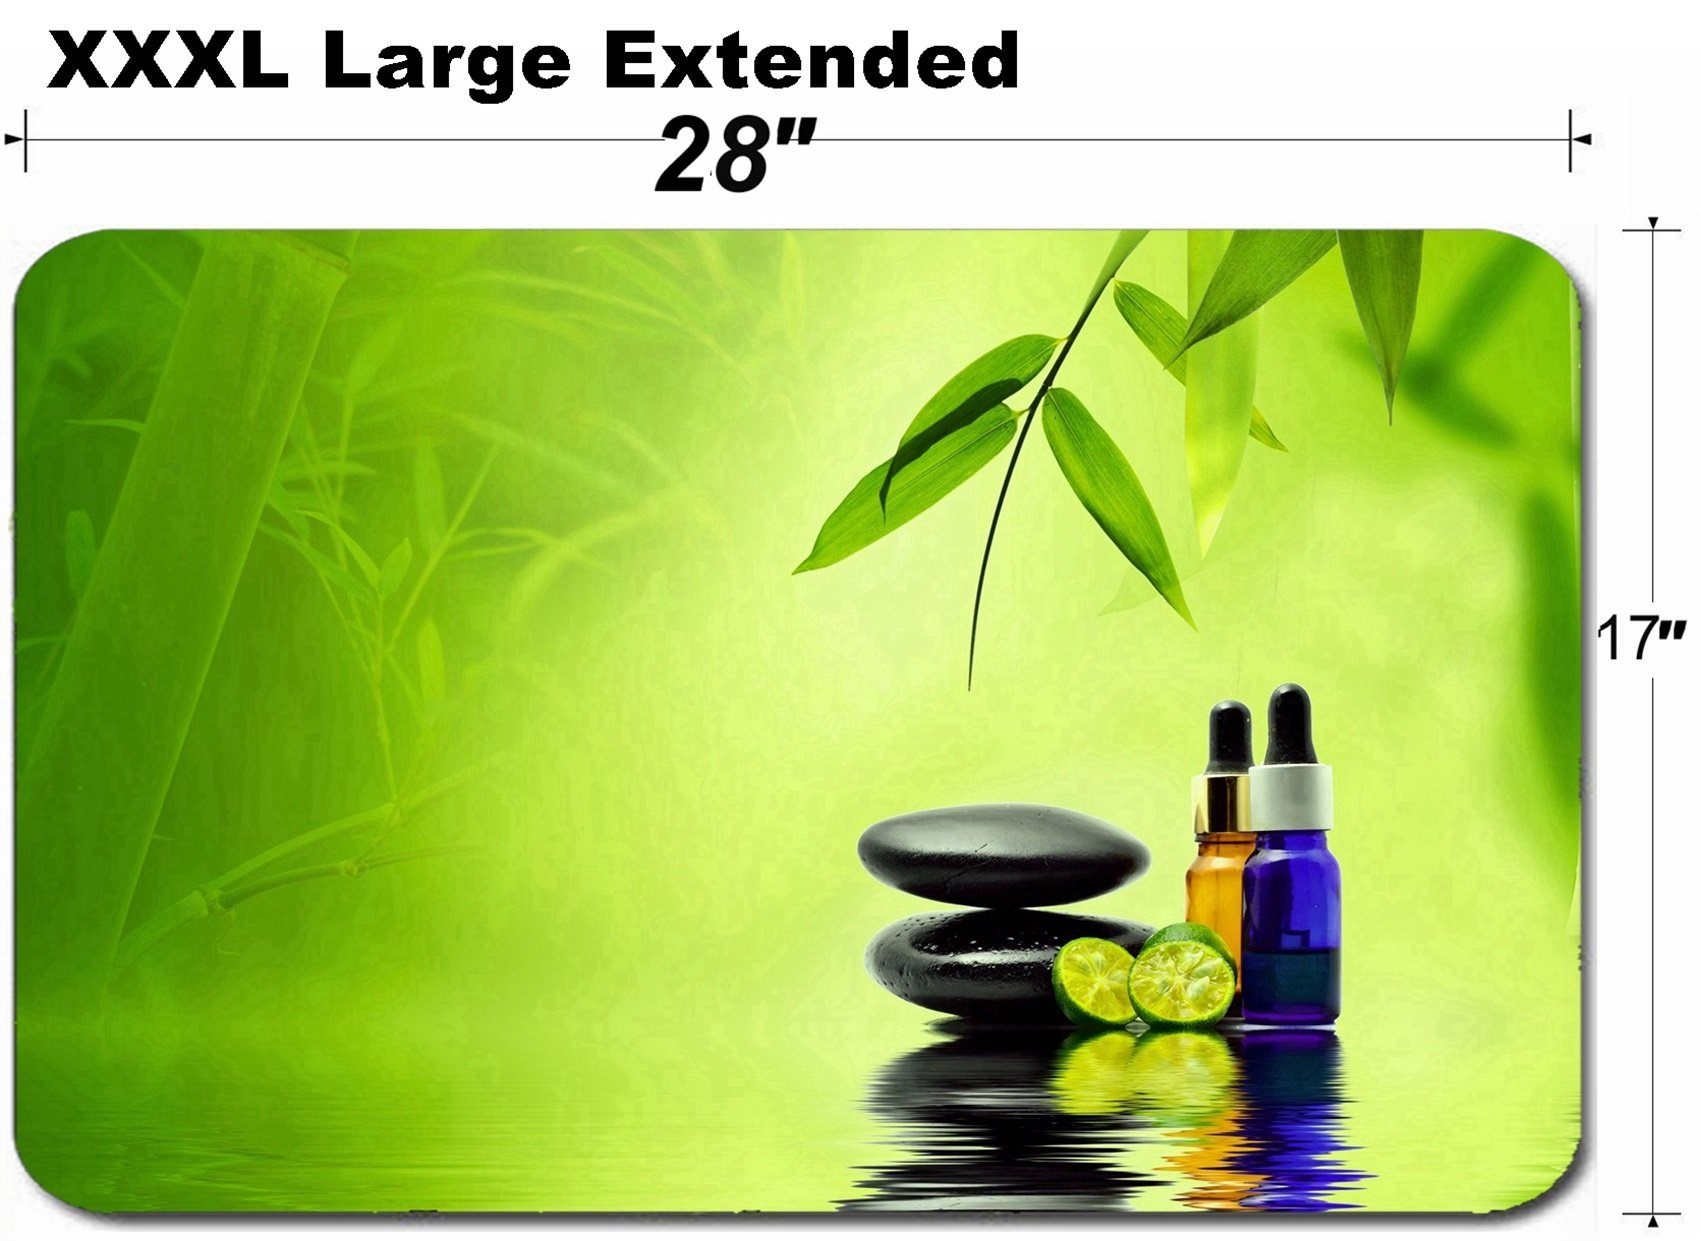 MSD Large Table Mat Non-Slip Natural Rubber Desk Pads Image 20152525 Essence Oil Zen Stone and calamansi in Spa Concept